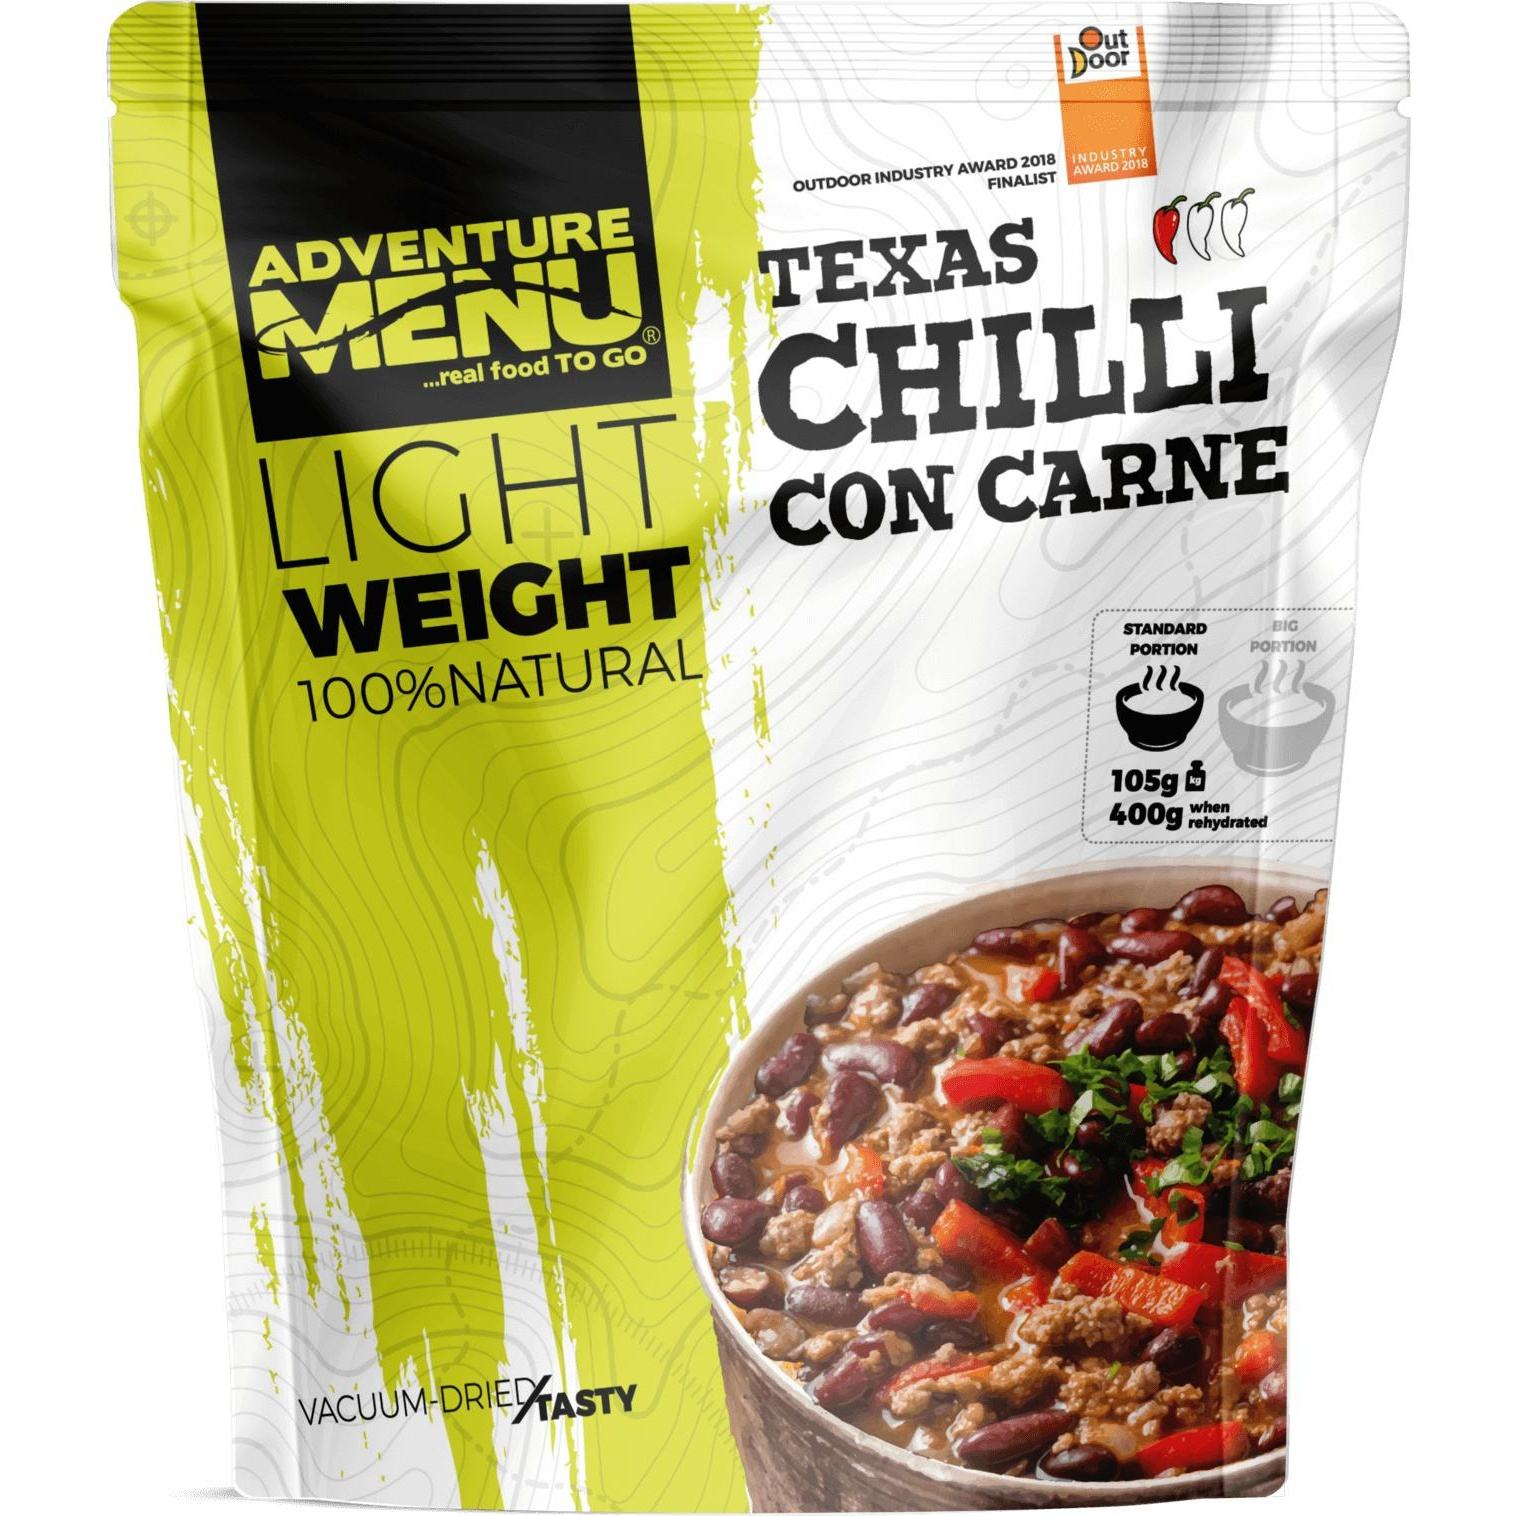 Lightweight Chilli con Carne 400g